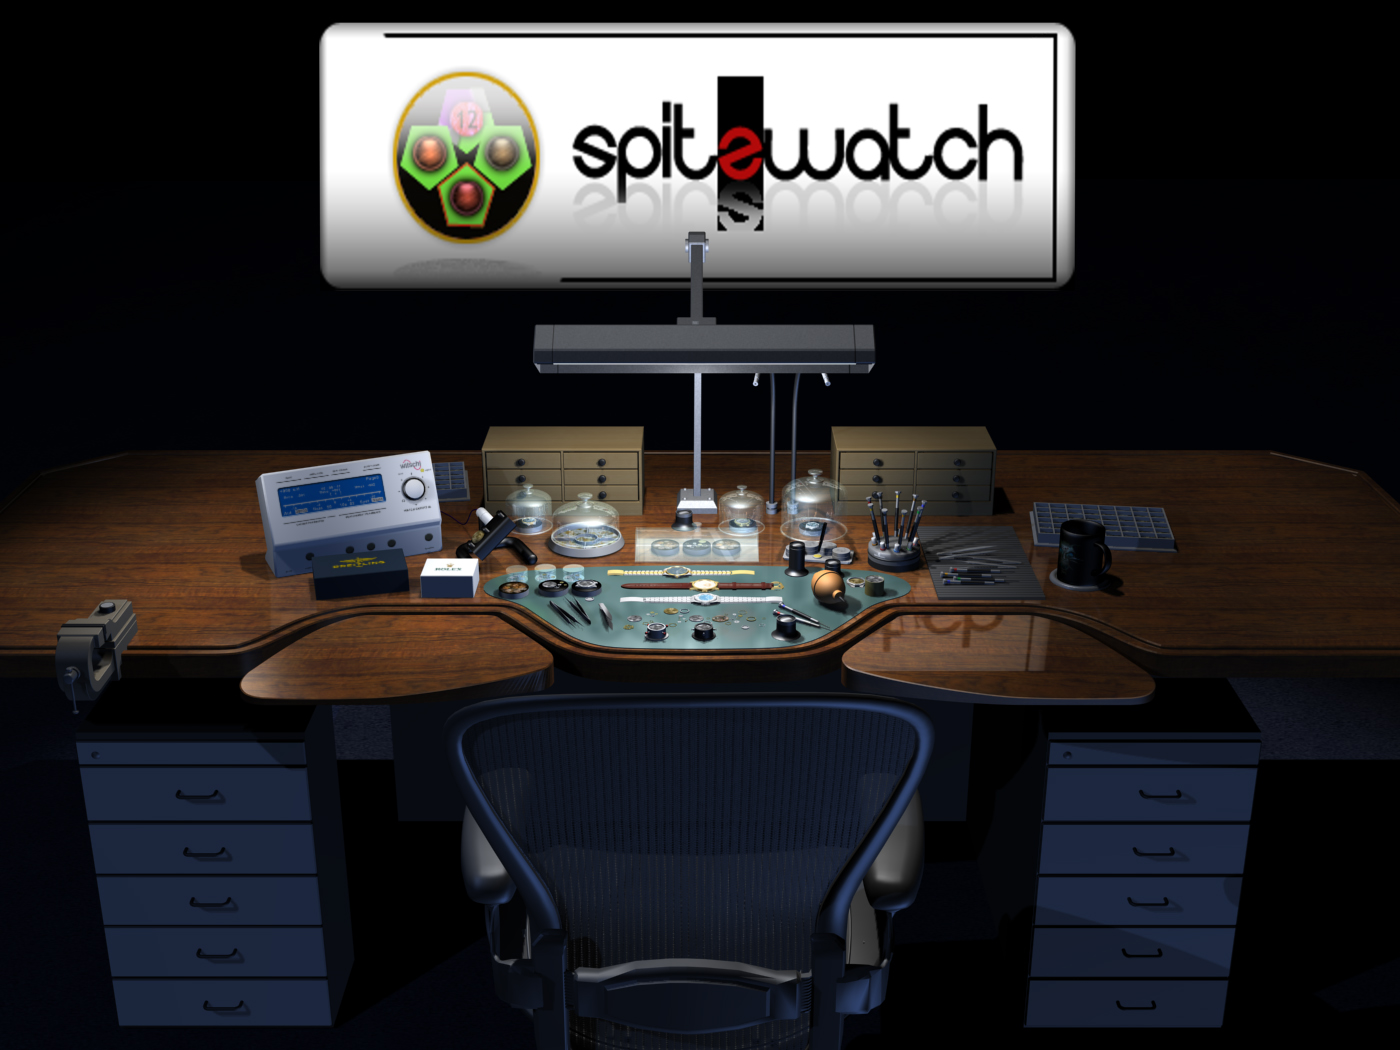 Dan spitz watches and watchmaker bench medusawatches Watchmakers bench